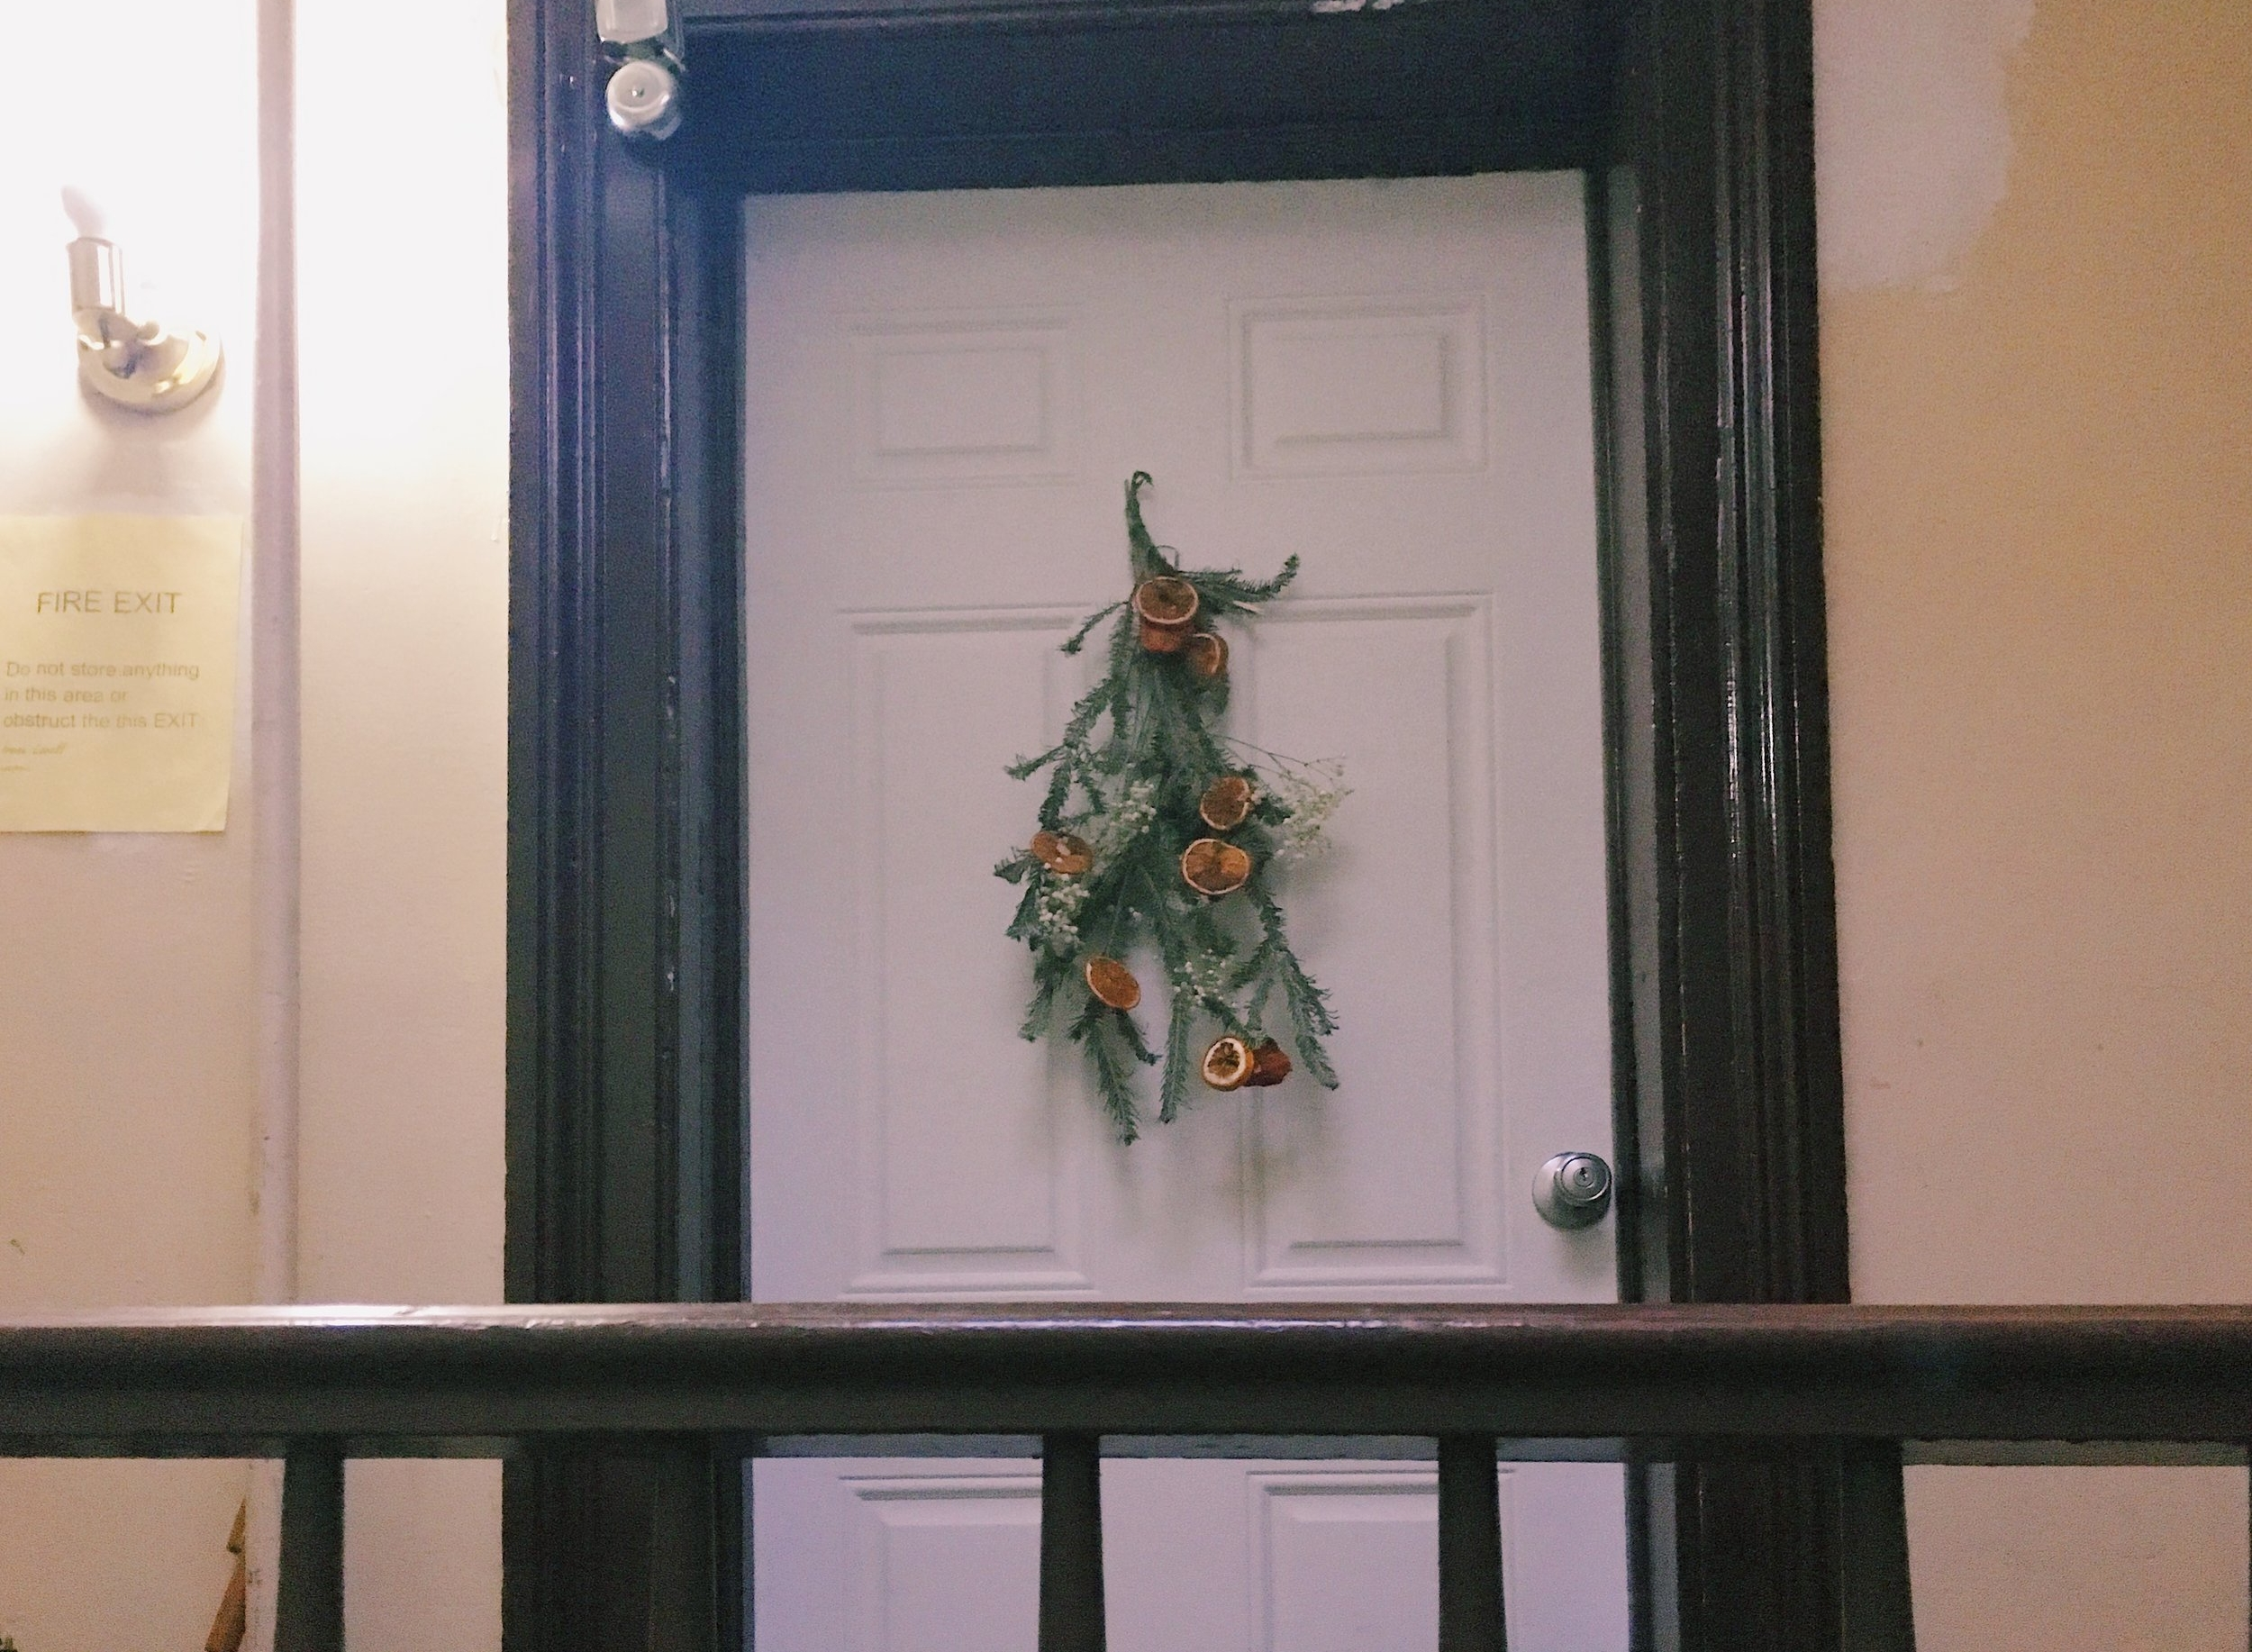 Festive AND it accentuates the fire exit sign.